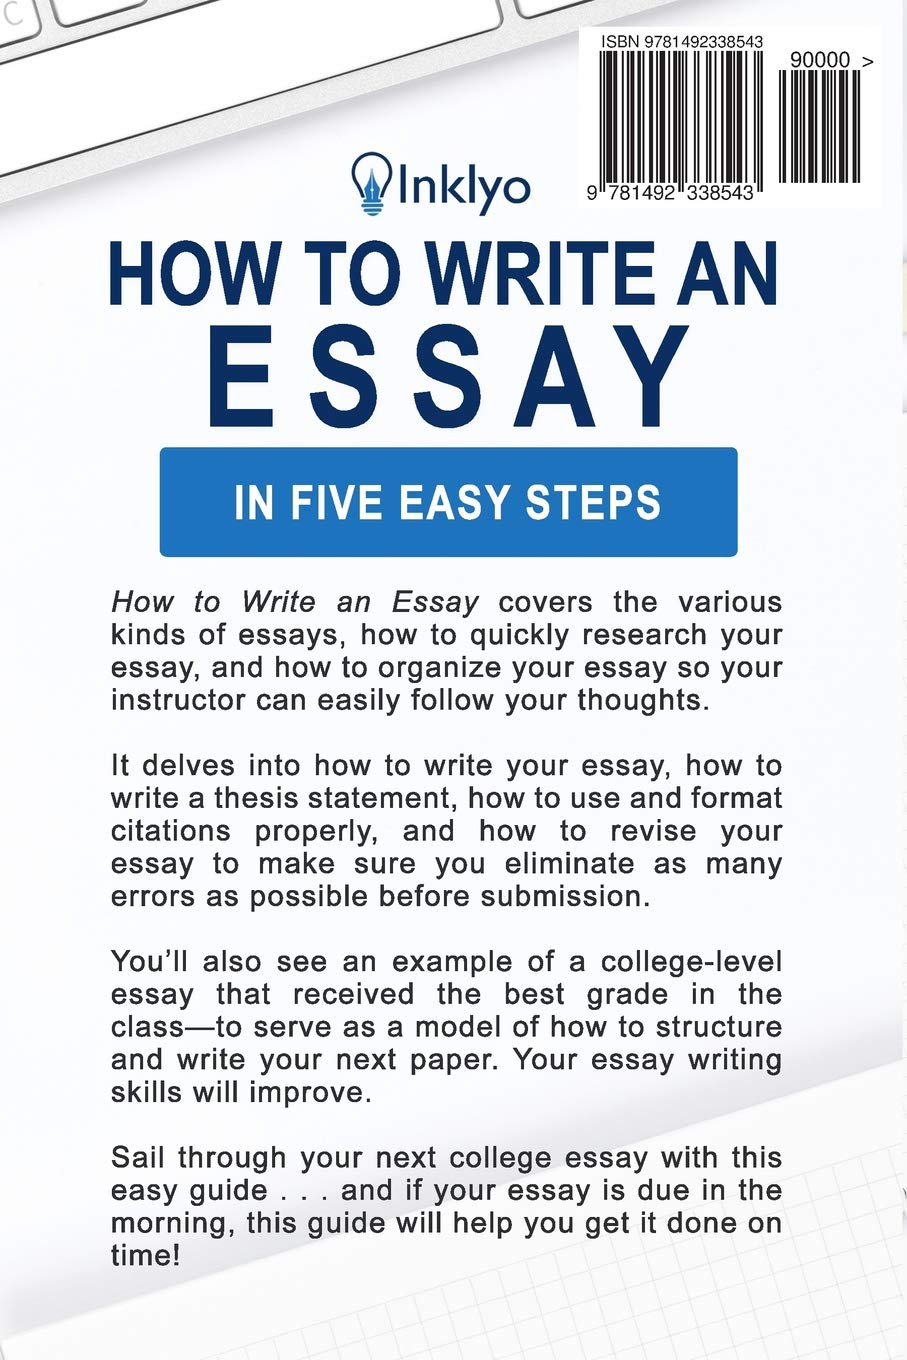 Essay Paper Checker  Making A Thesis Statement For An Essay also Importance Of English Language Essay How To Write An Essay In Five Easy Steps Amazonin  Narrative Essay Example For High School